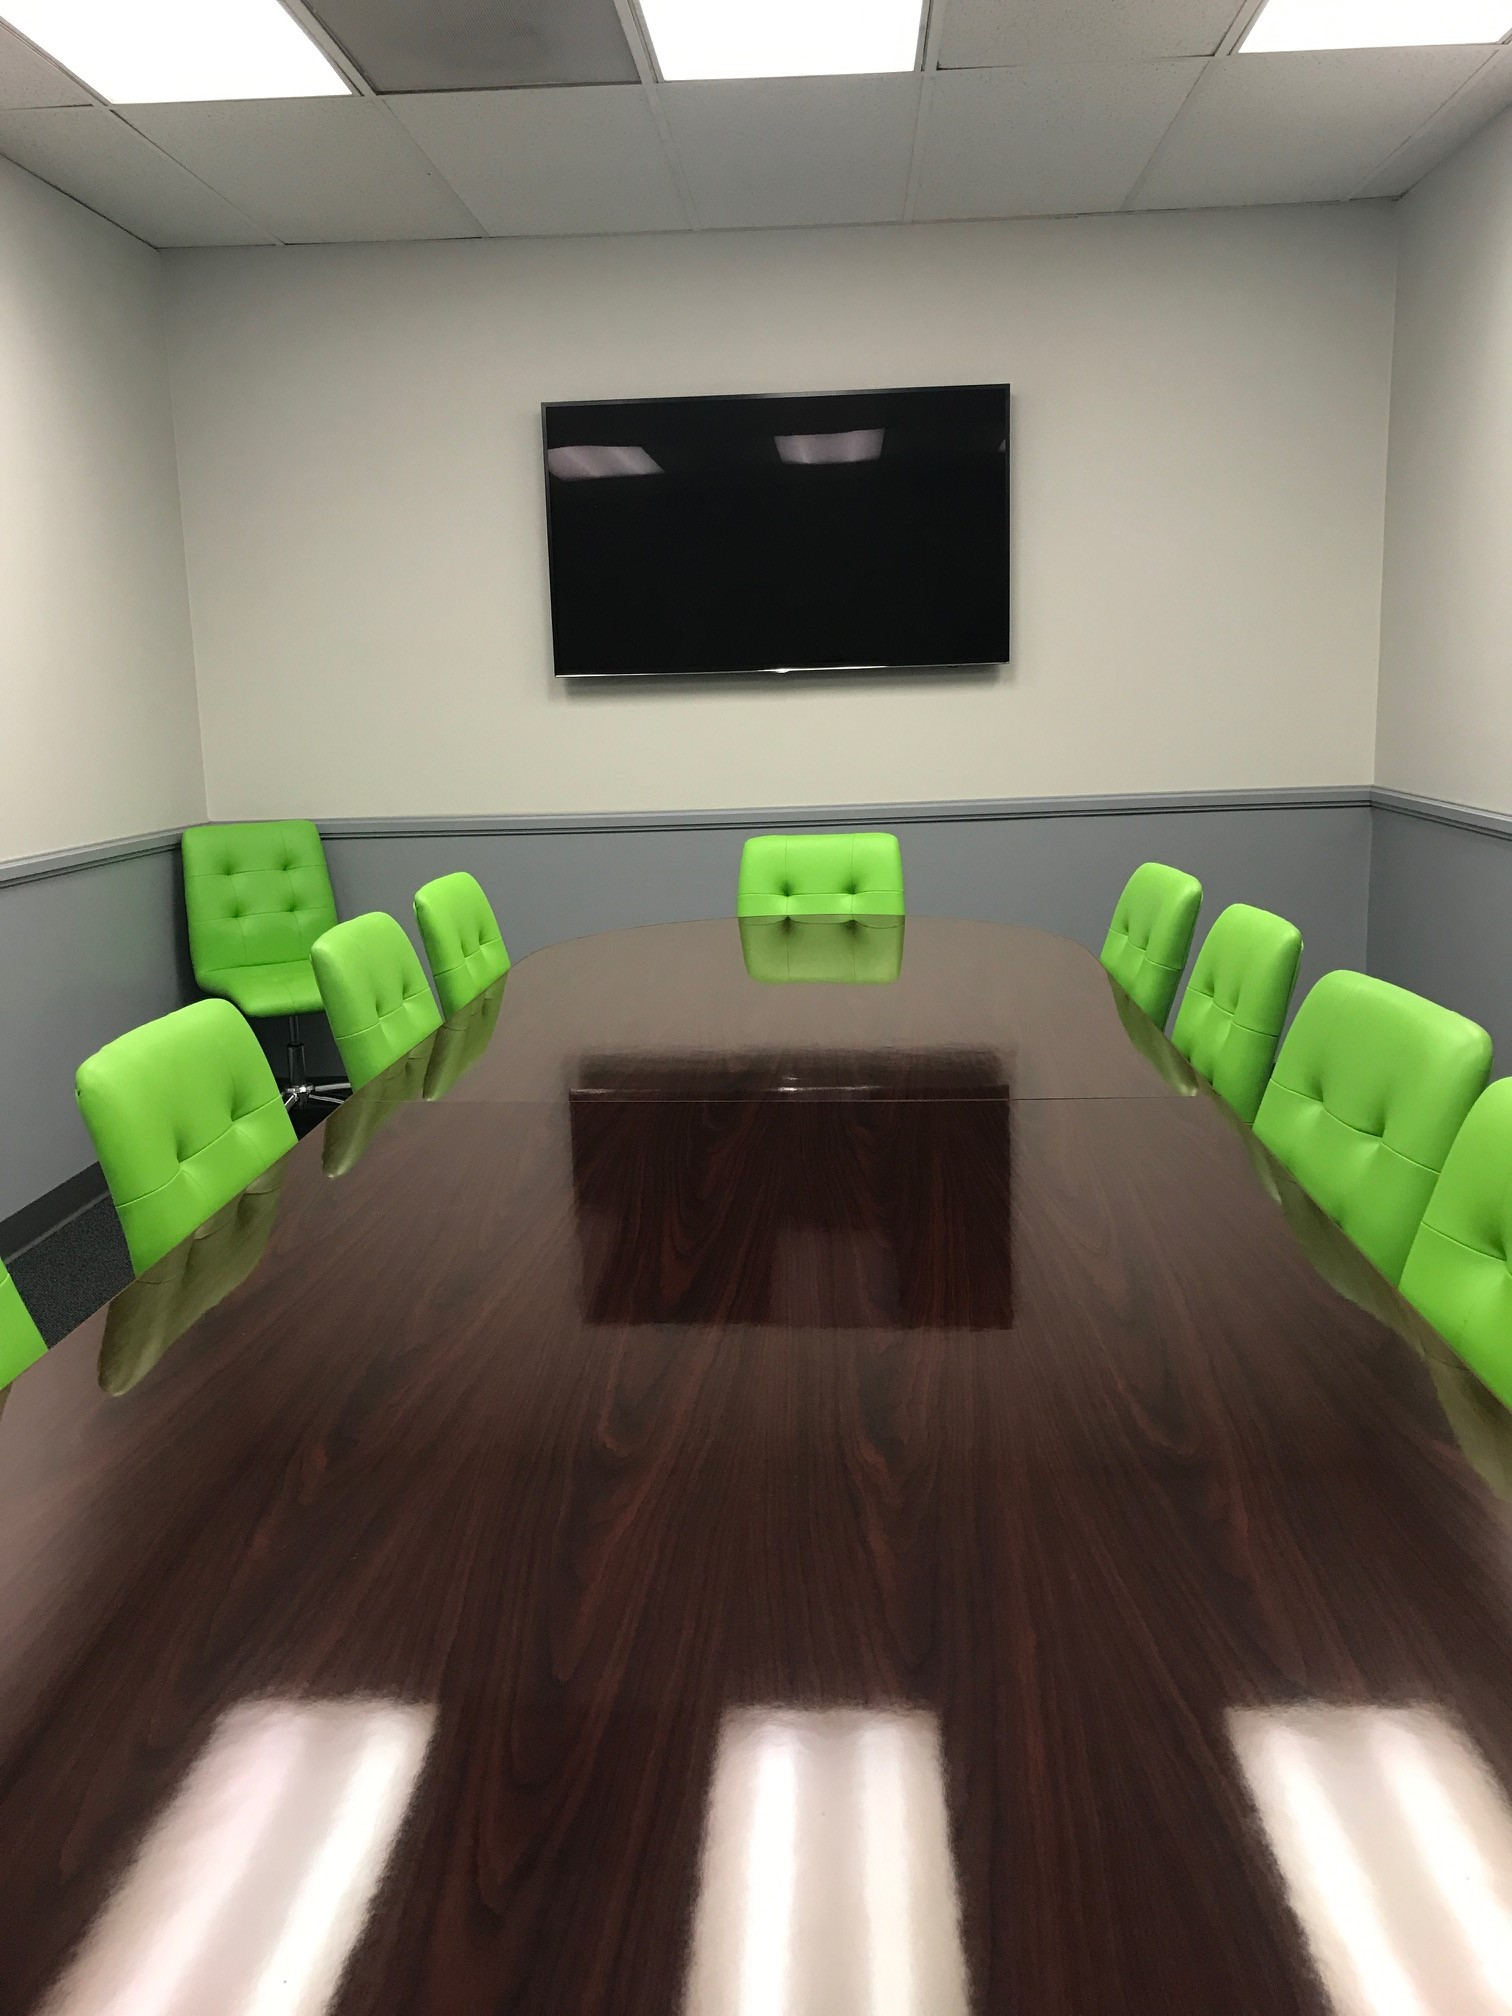 Medium Conference Room - Davinci Meeting & Workspaces